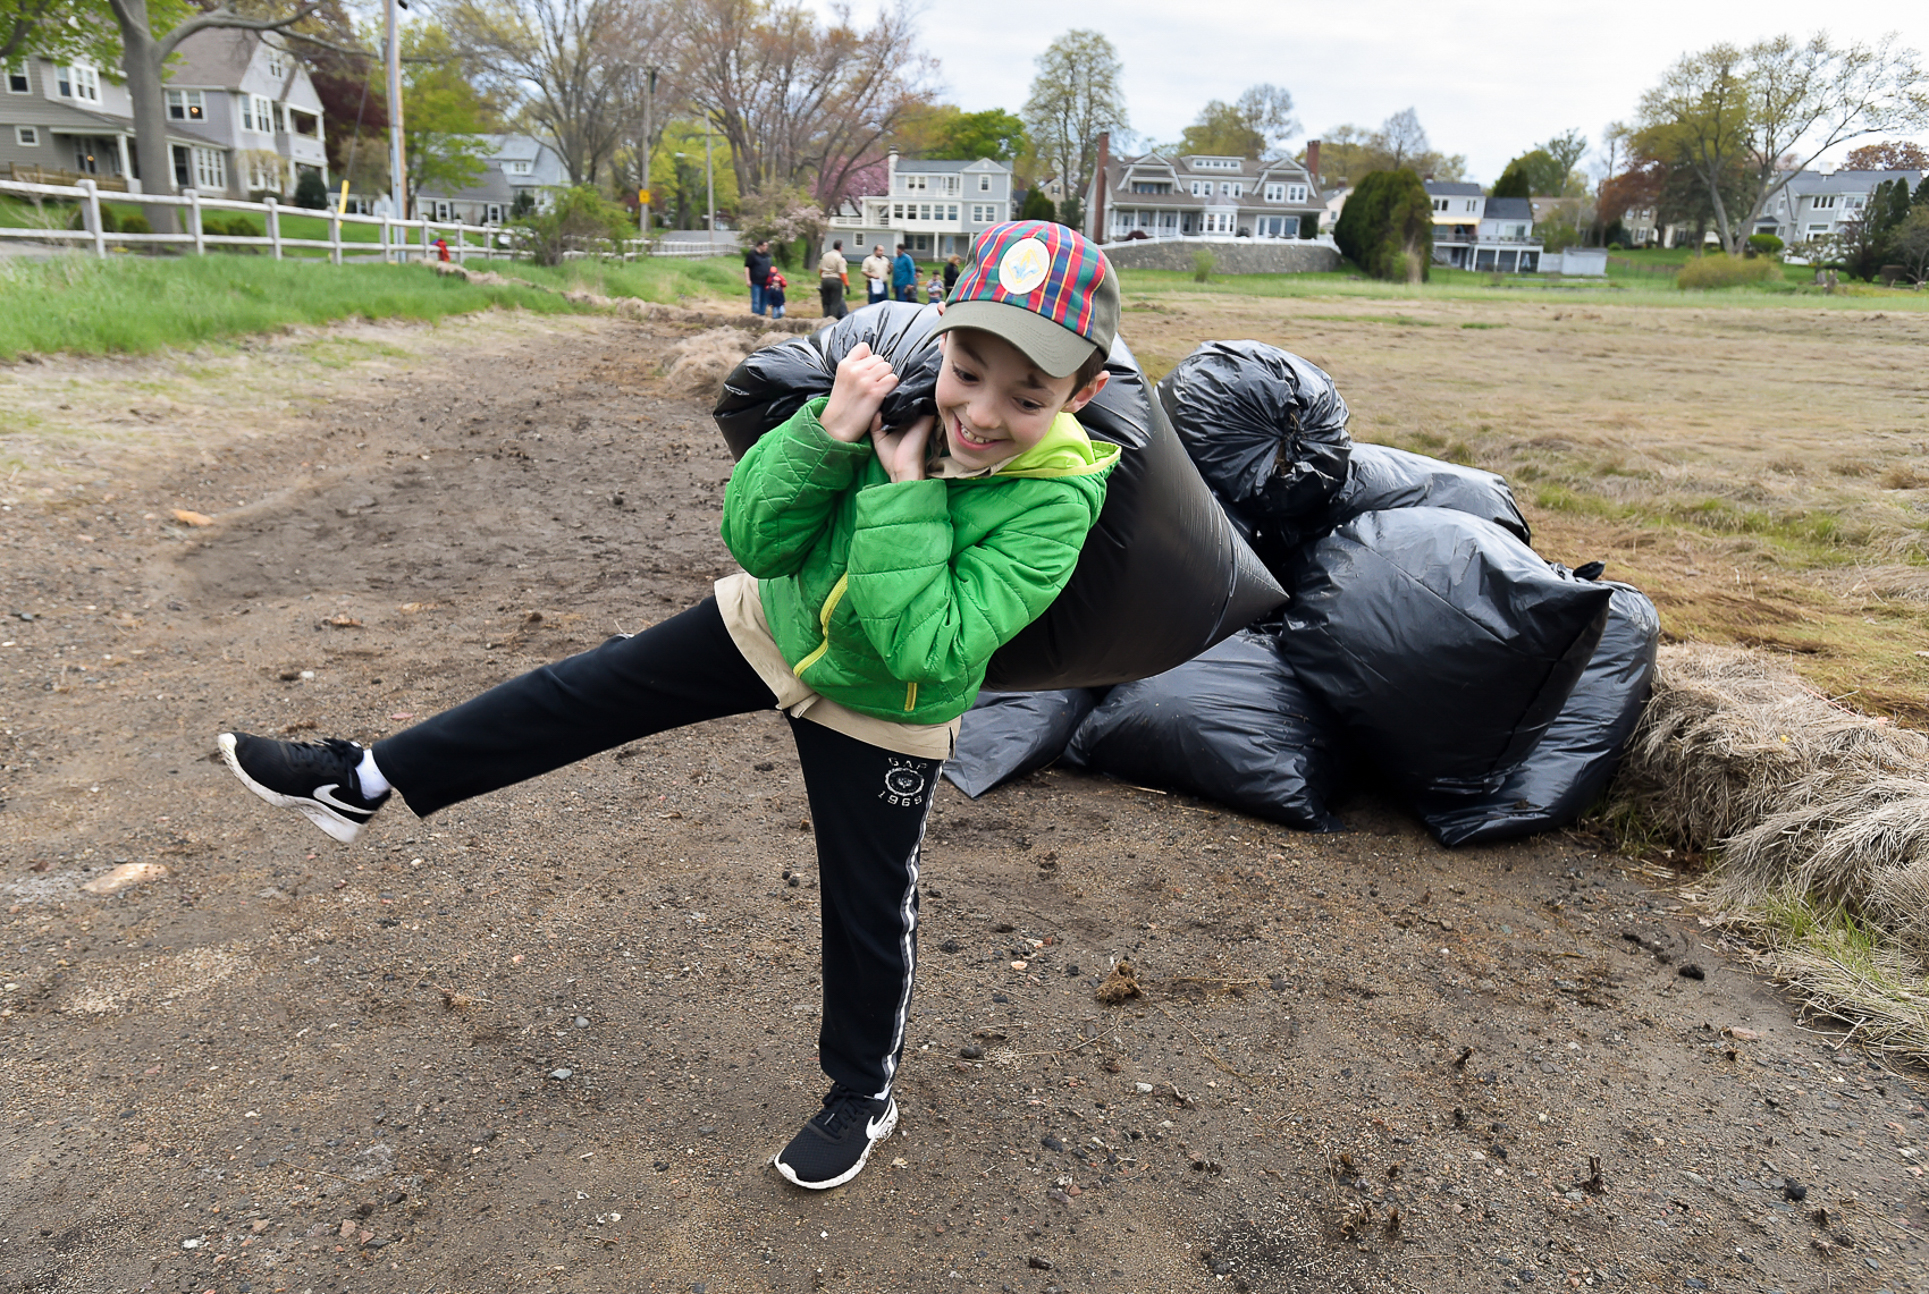 """Nicholas Dube, 9, of Cub Scout Pack 11, carries a trash bag full of old marsh debris known as """"marsh vomit"""" while cleaning up the marsh around Goldthwait Reservation, Tuesday evening, May 9, 2017. [Wicked Local Staff Photo / David Sokol]"""